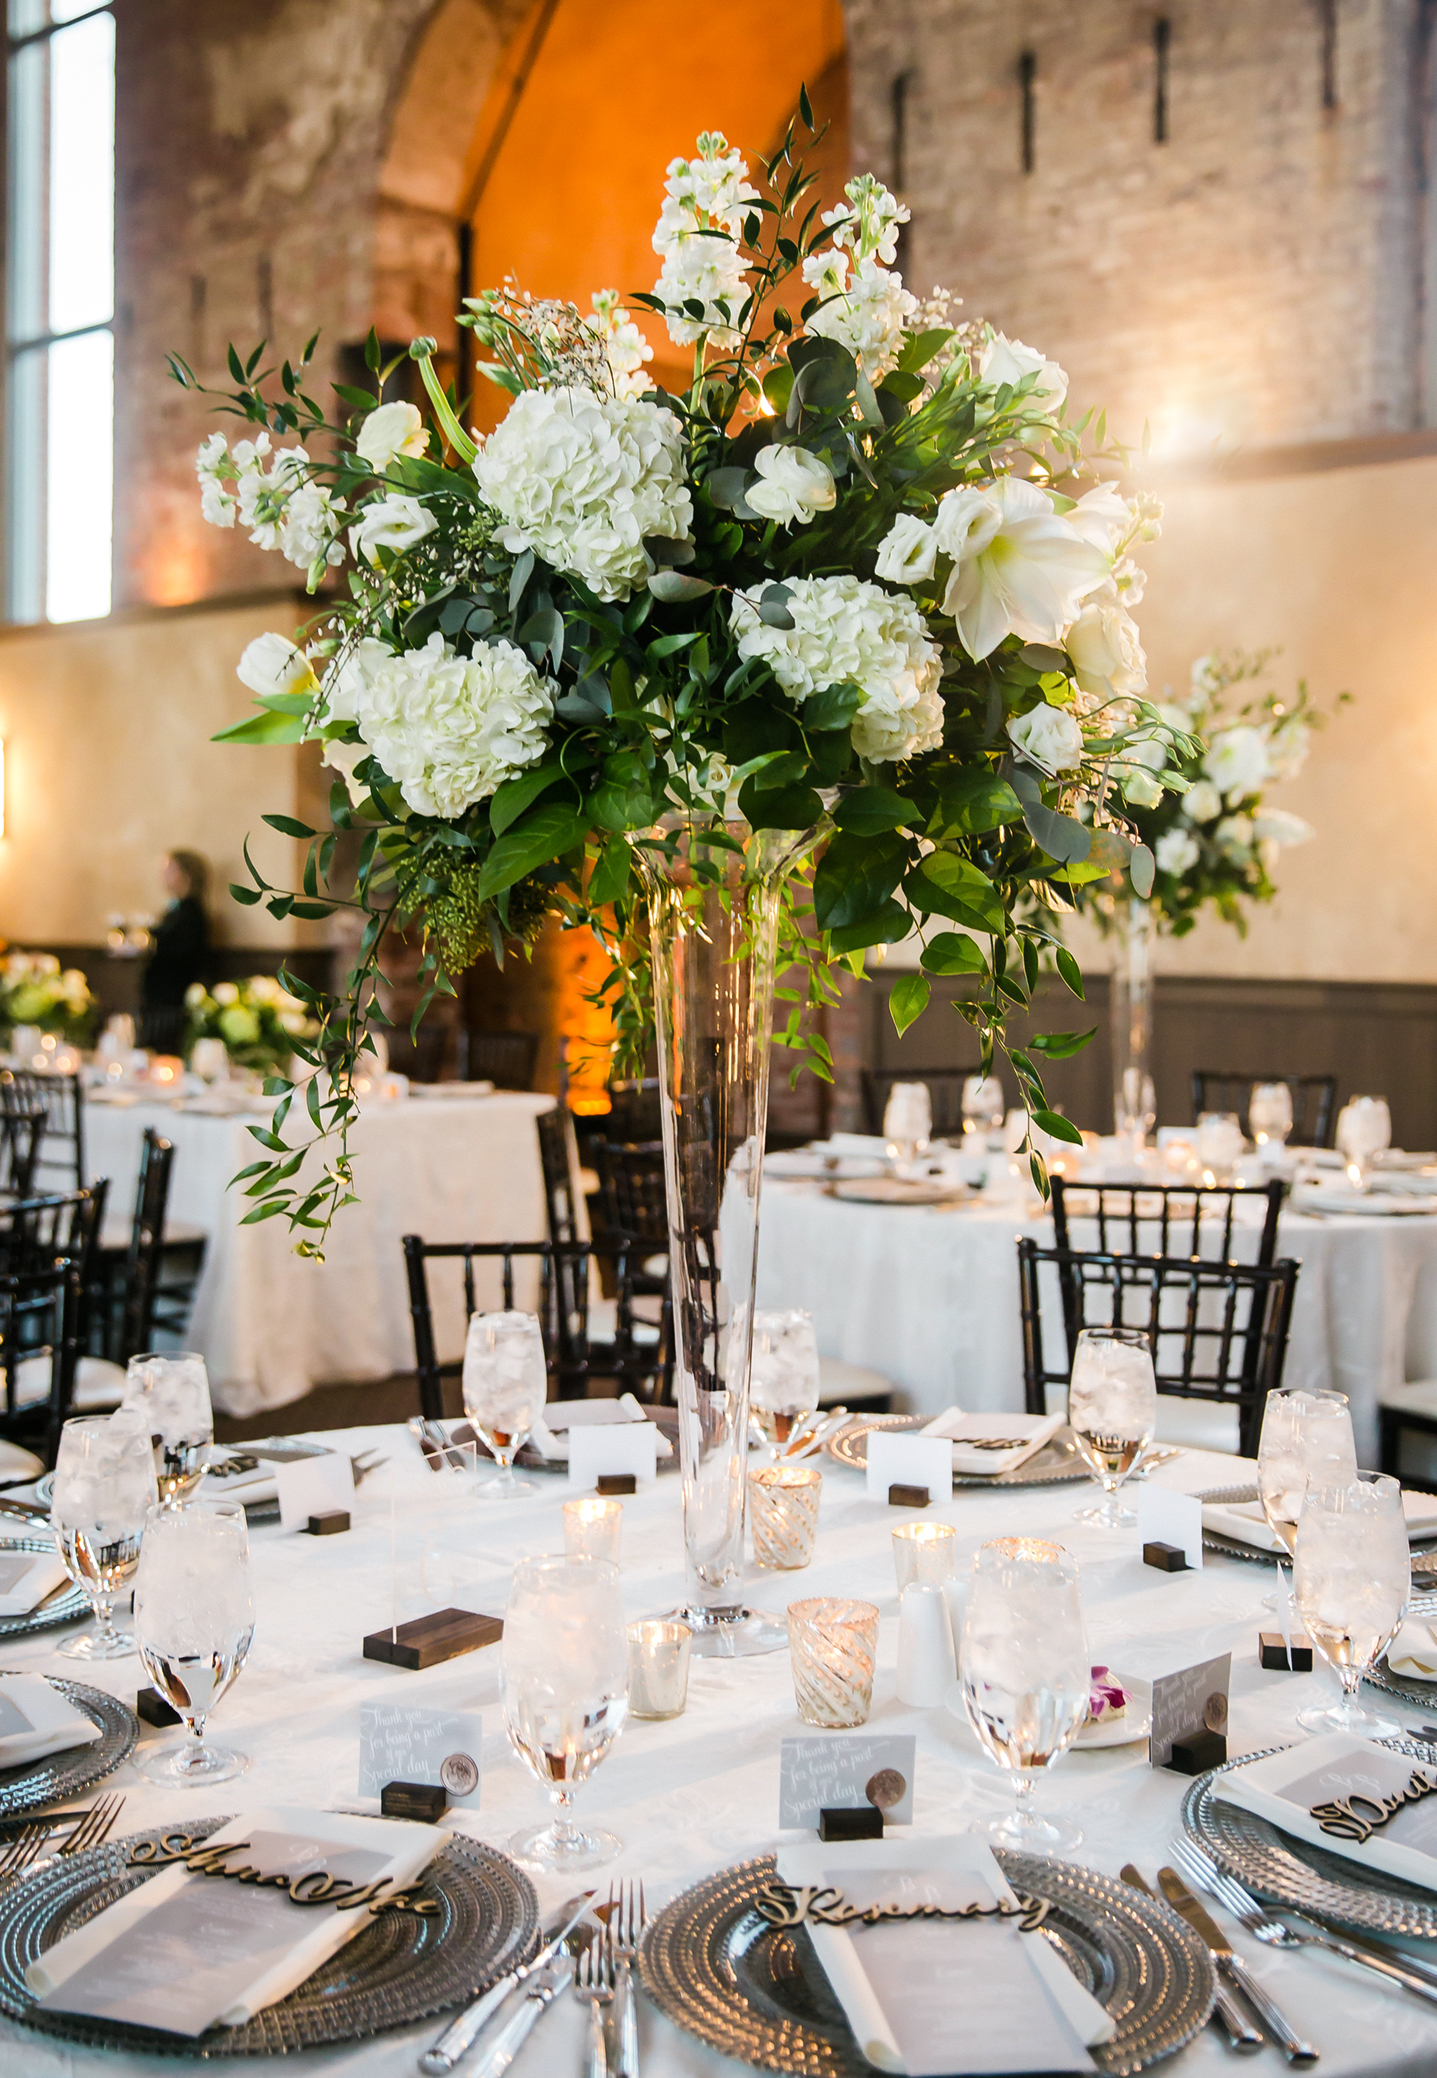 A tall classic white fresh flower centerpiece designed in a lush natural style sits on a glass riser at a winter wedding reception.